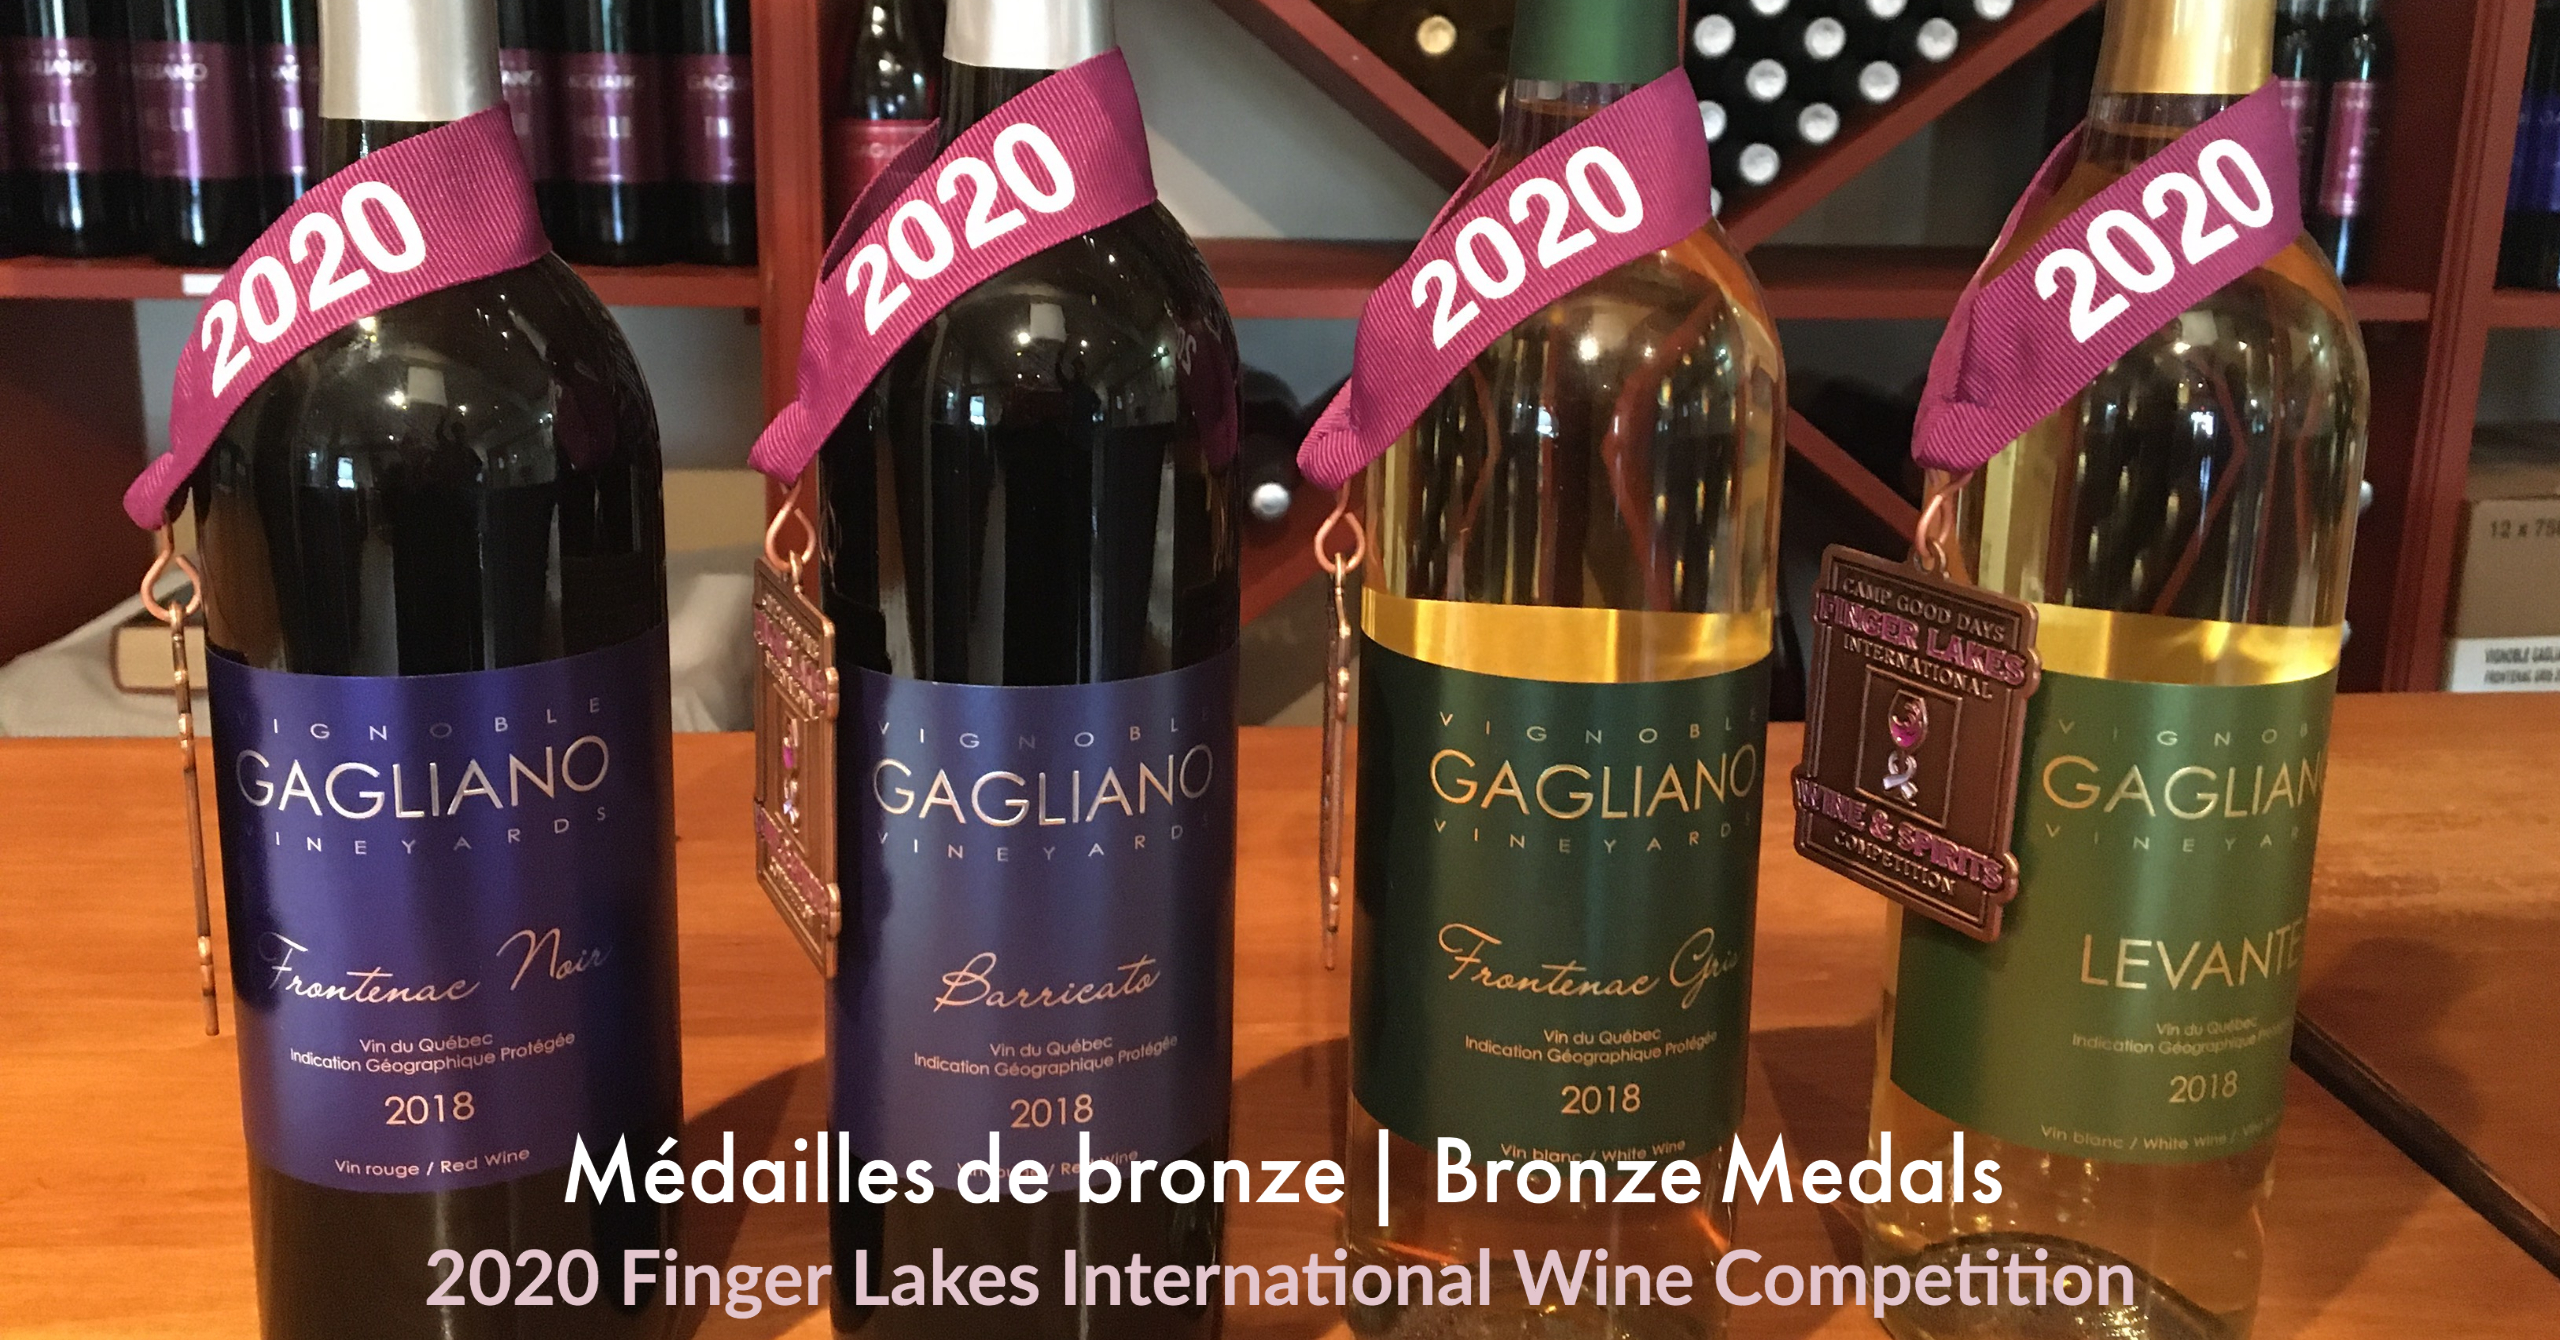 Bronze Medals at the 2020 Finger Lakes International Wine Competition